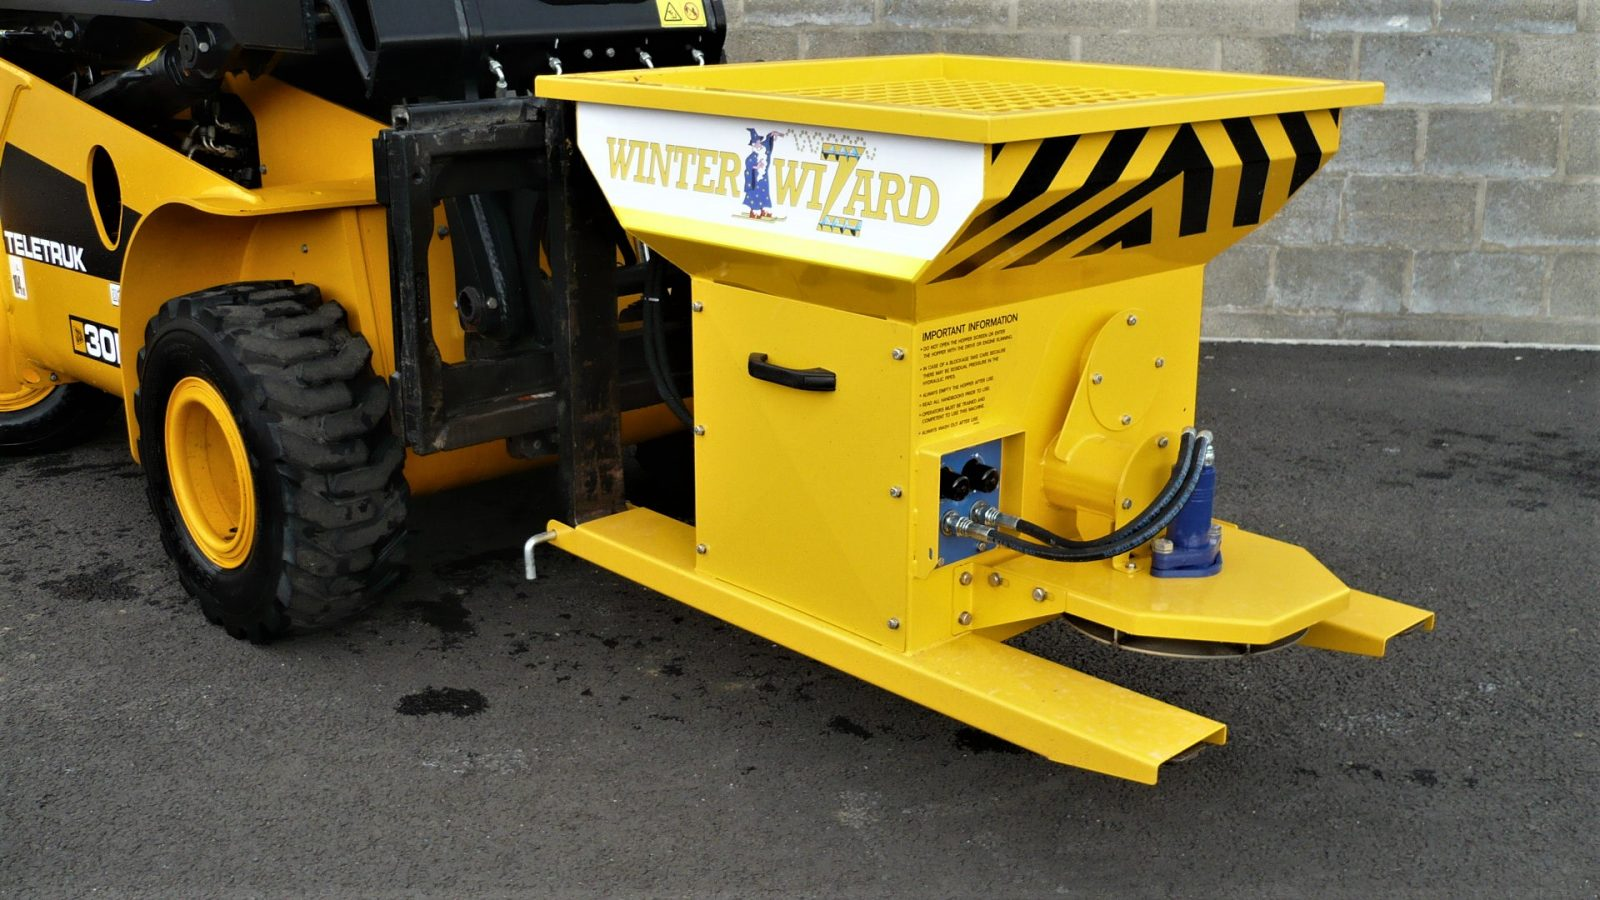 The Winter Wizard salt spreader for distribution centre and factory use